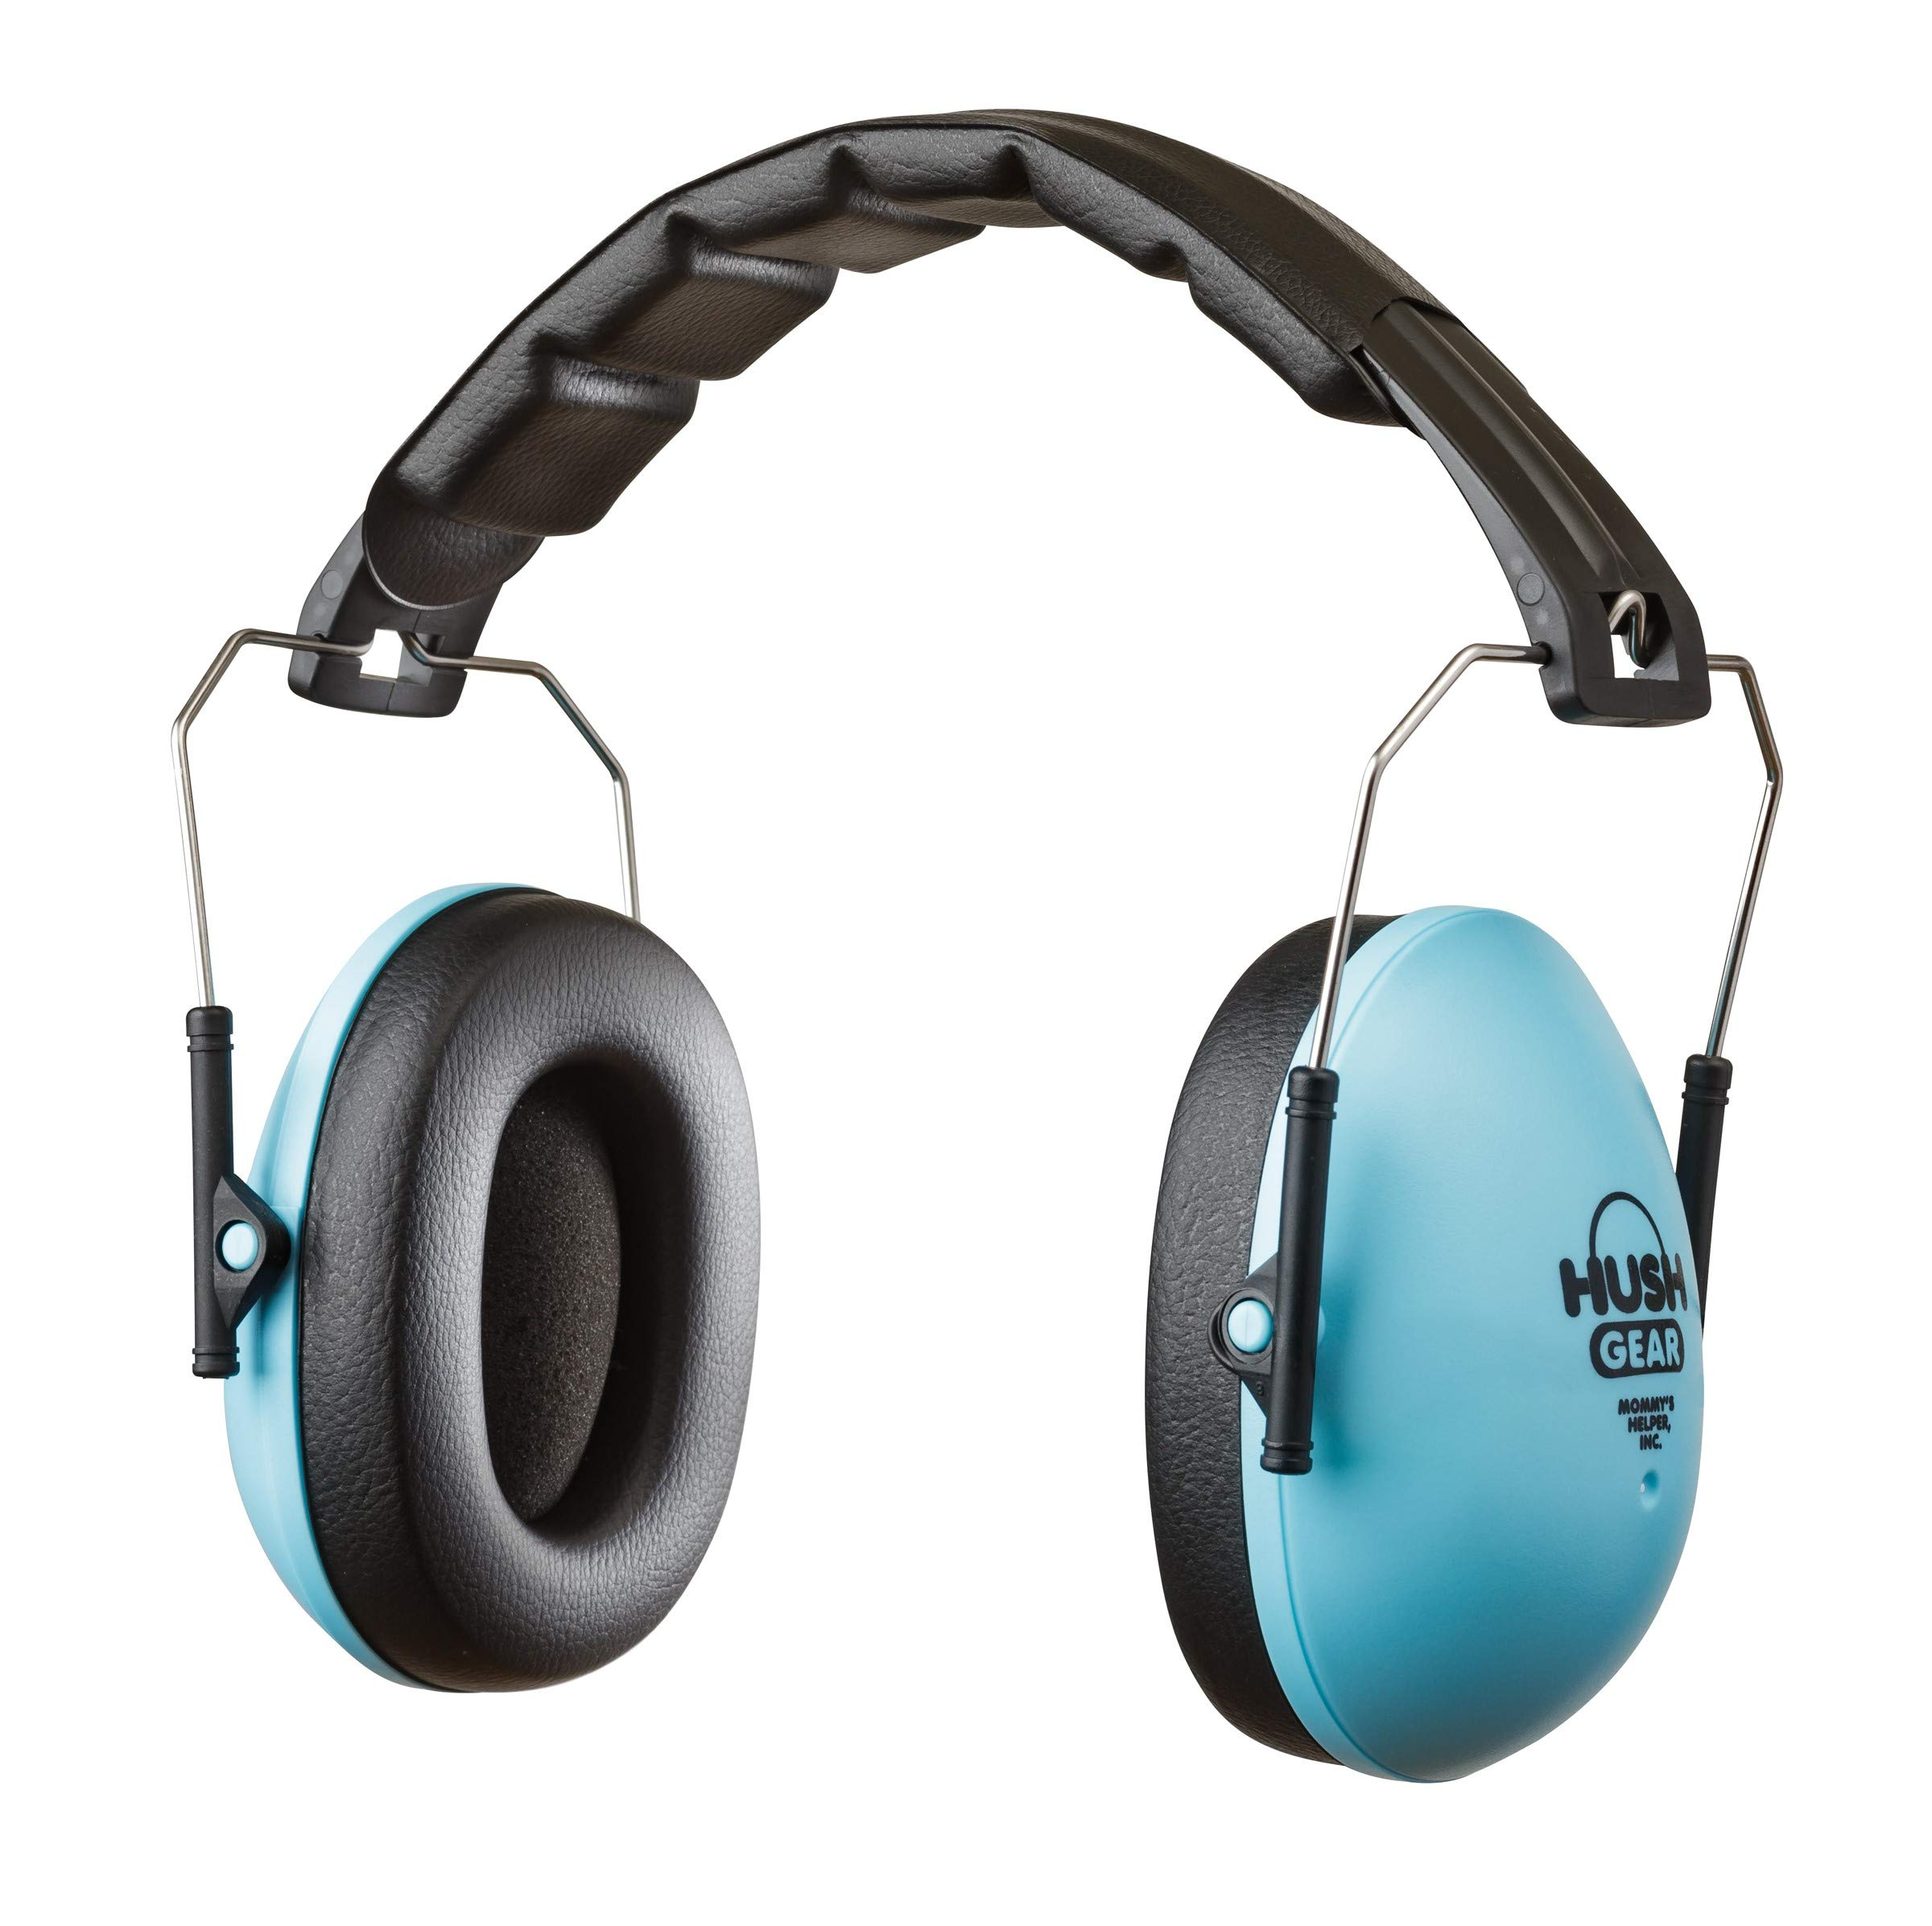 Hush Gear Noise Cancelling Headphones for Kids Ear Protection Earmuffs - 28.6dB Noise Reduction for Toddler Ear Protection - Adjustable, Padded, Comfortable Fit Earmuffs for Kids, Blue